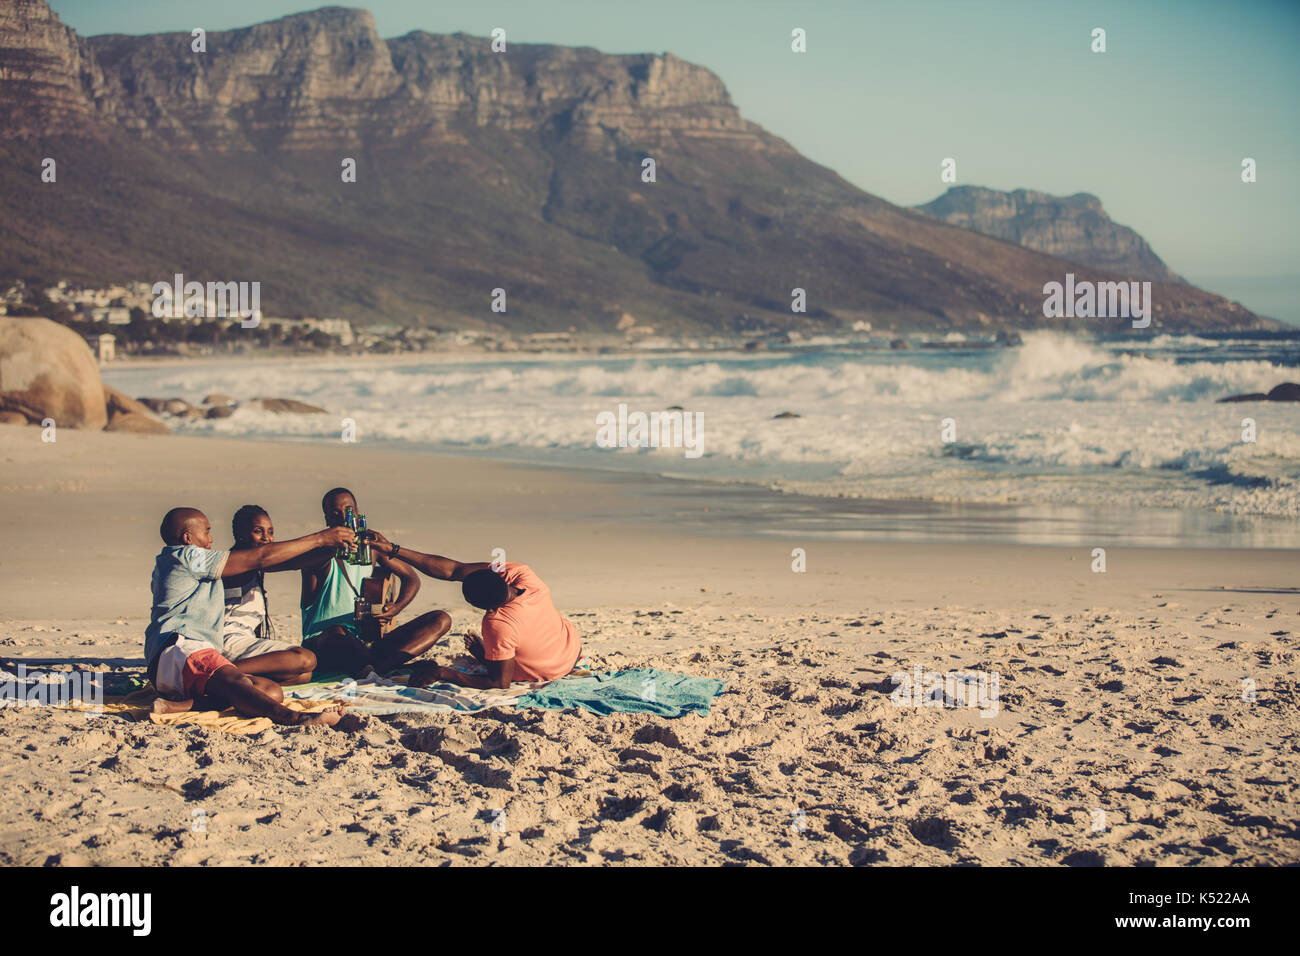 Portrait of group of friends playing guitar and drinking beer. People on the beach having a party. - Stock Image